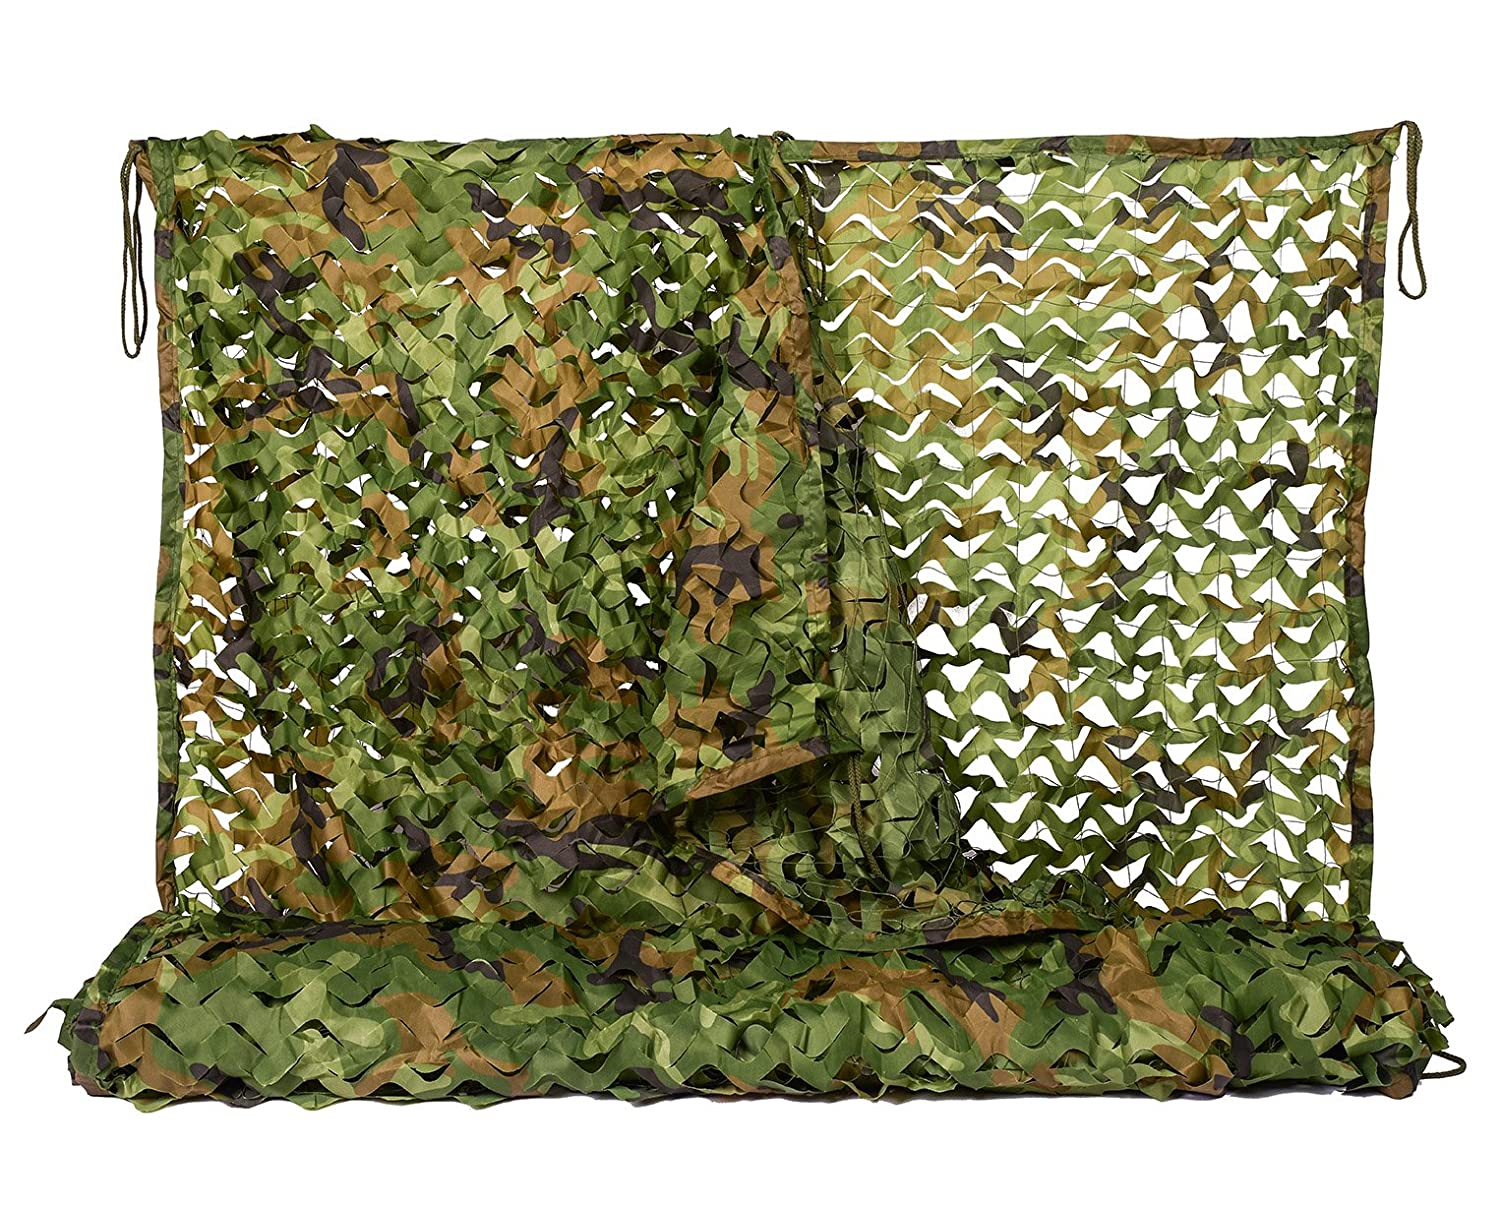 NINAT Woodland Camouflage Netting Army Camo Net For Camping Military  Hunting Shooting Sunscreen Nets  1x2M,2x3M,1 5x4M,2x5M,2x6M,2x8M,3x3M,4x5M,4x6M,6x